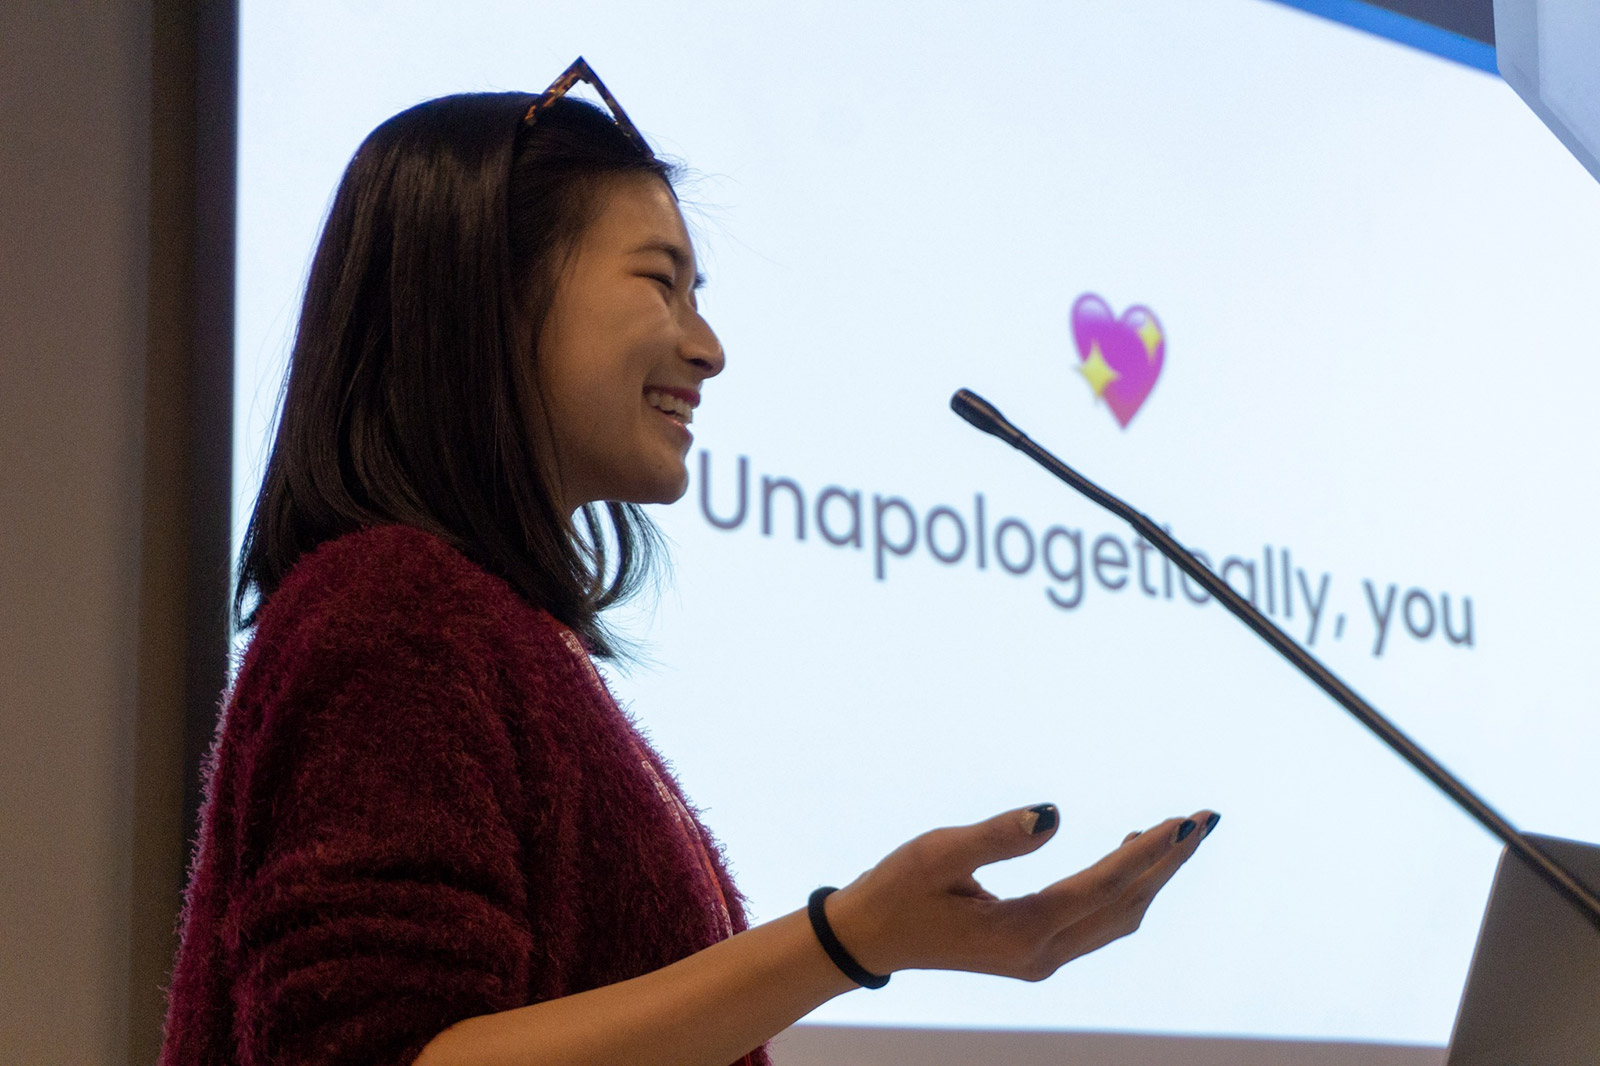 """A woman with her palm upturned, in front of a screen reading """"Unapologetically, you"""""""